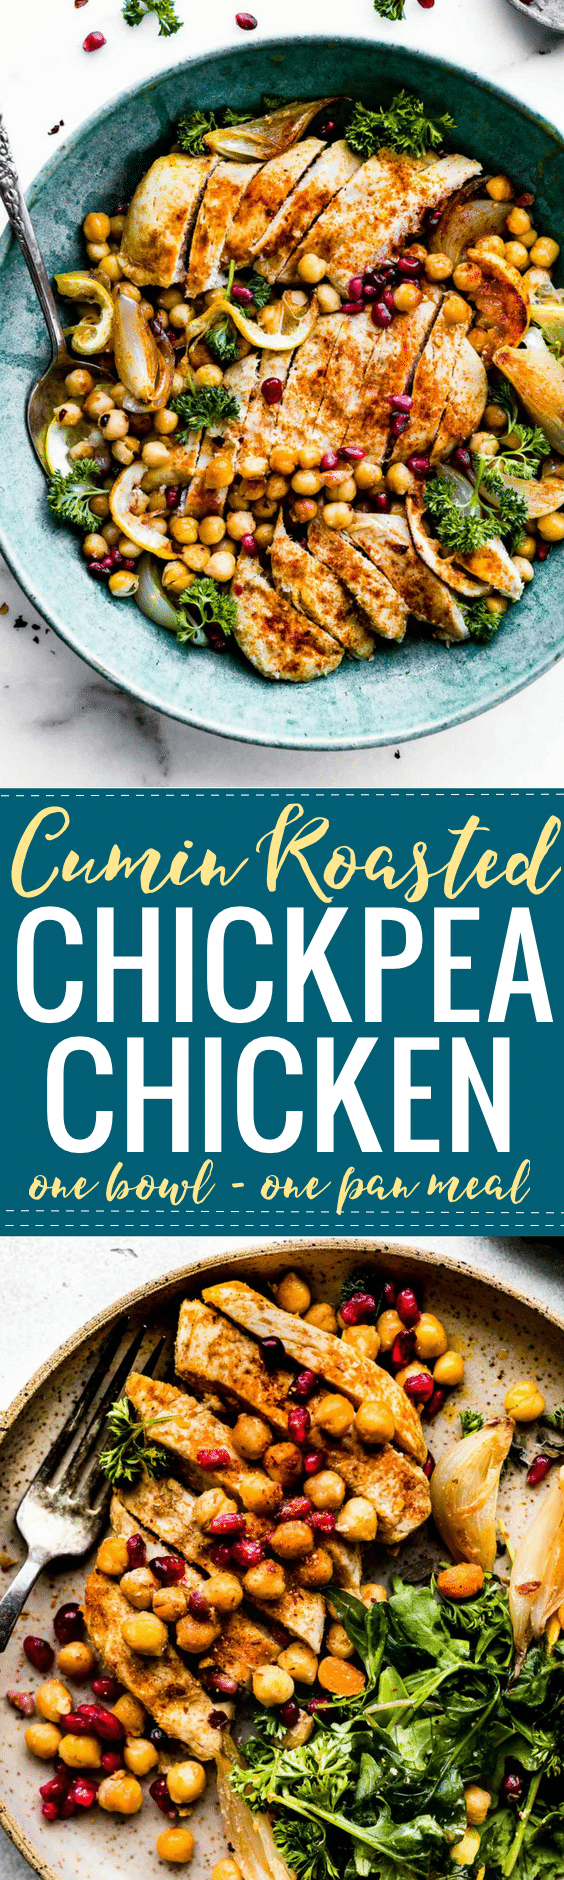 Cumin Roasted Chickpea Chicken Bowls Recipe | Cotter Crunch